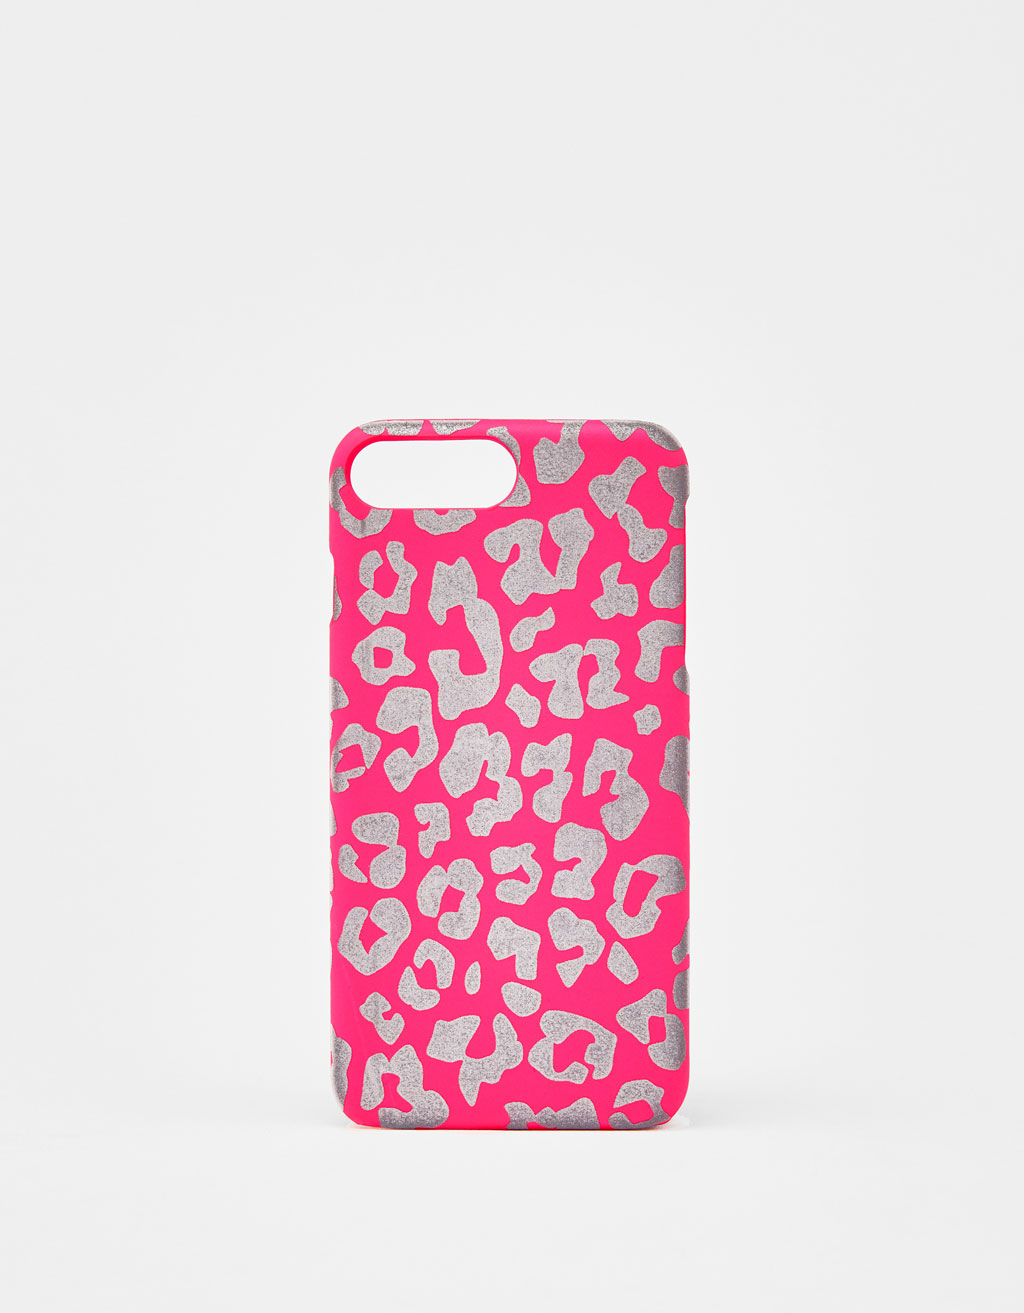 Reflective leopard print iPhone 6 Plus / 7 Plus / 8 Plus case